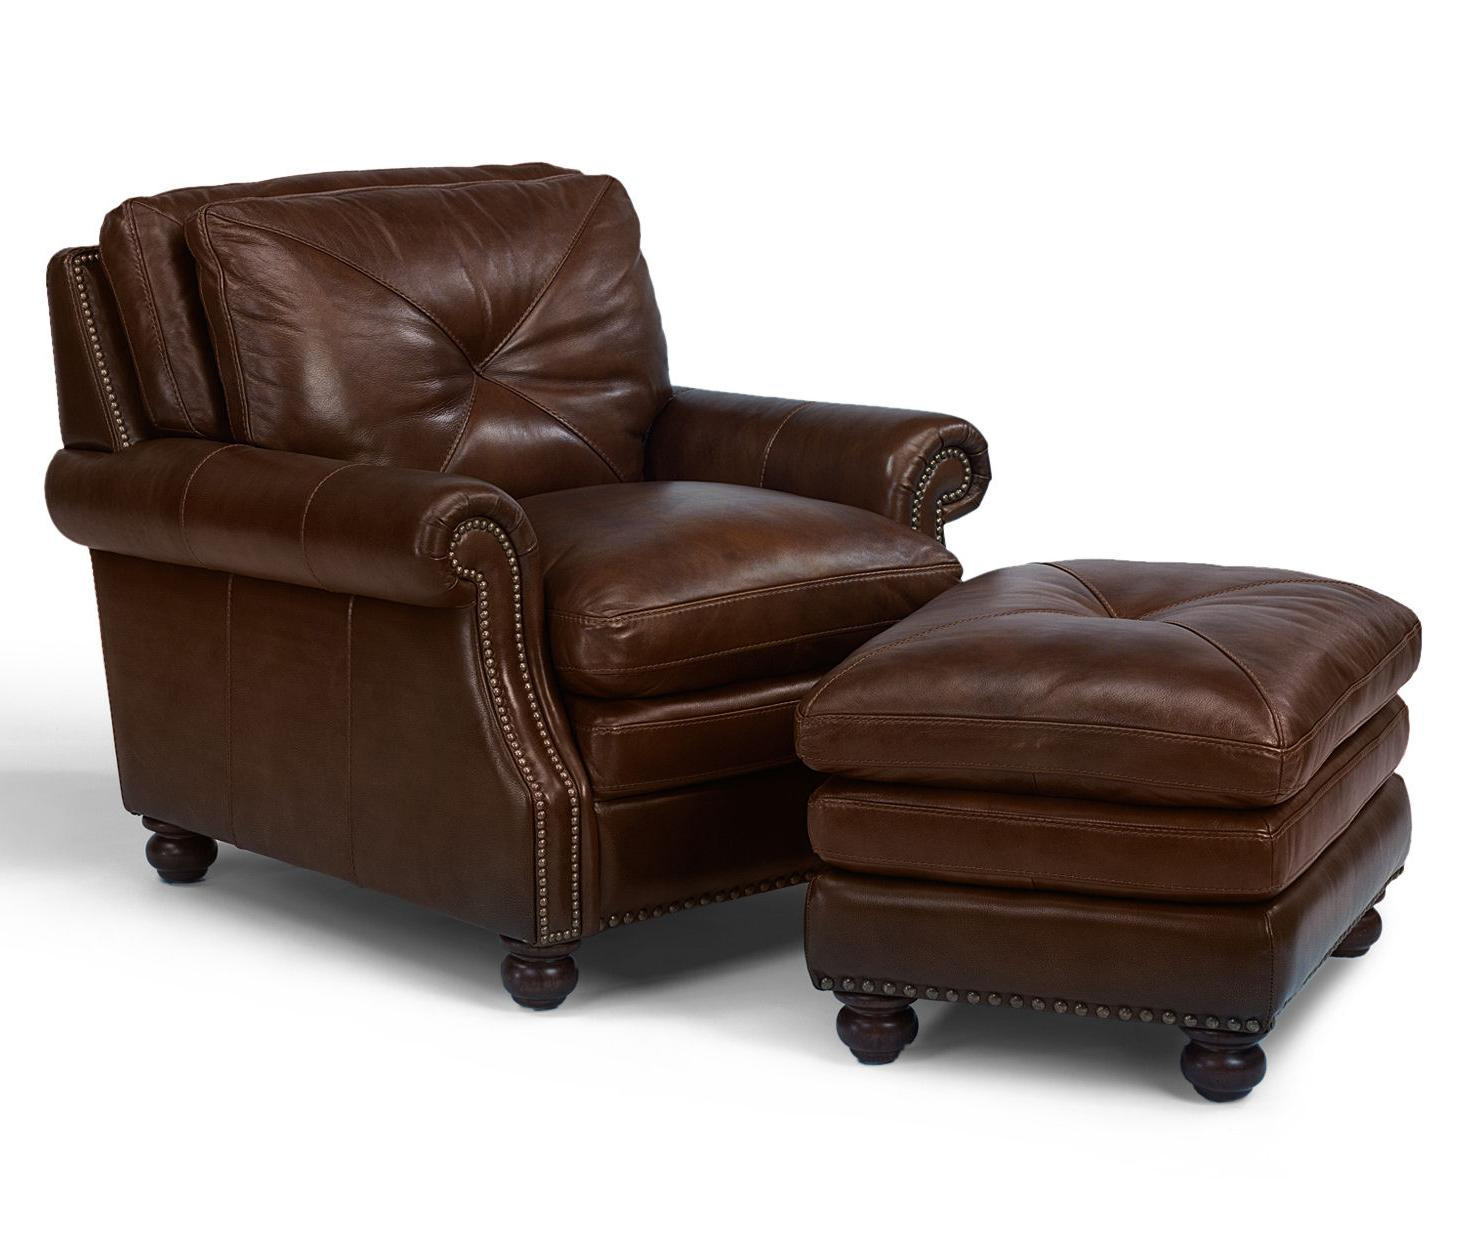 Accent Chairs with Arms Under 100 | Wing Chair Recliner | Leather Chair and Ottoman